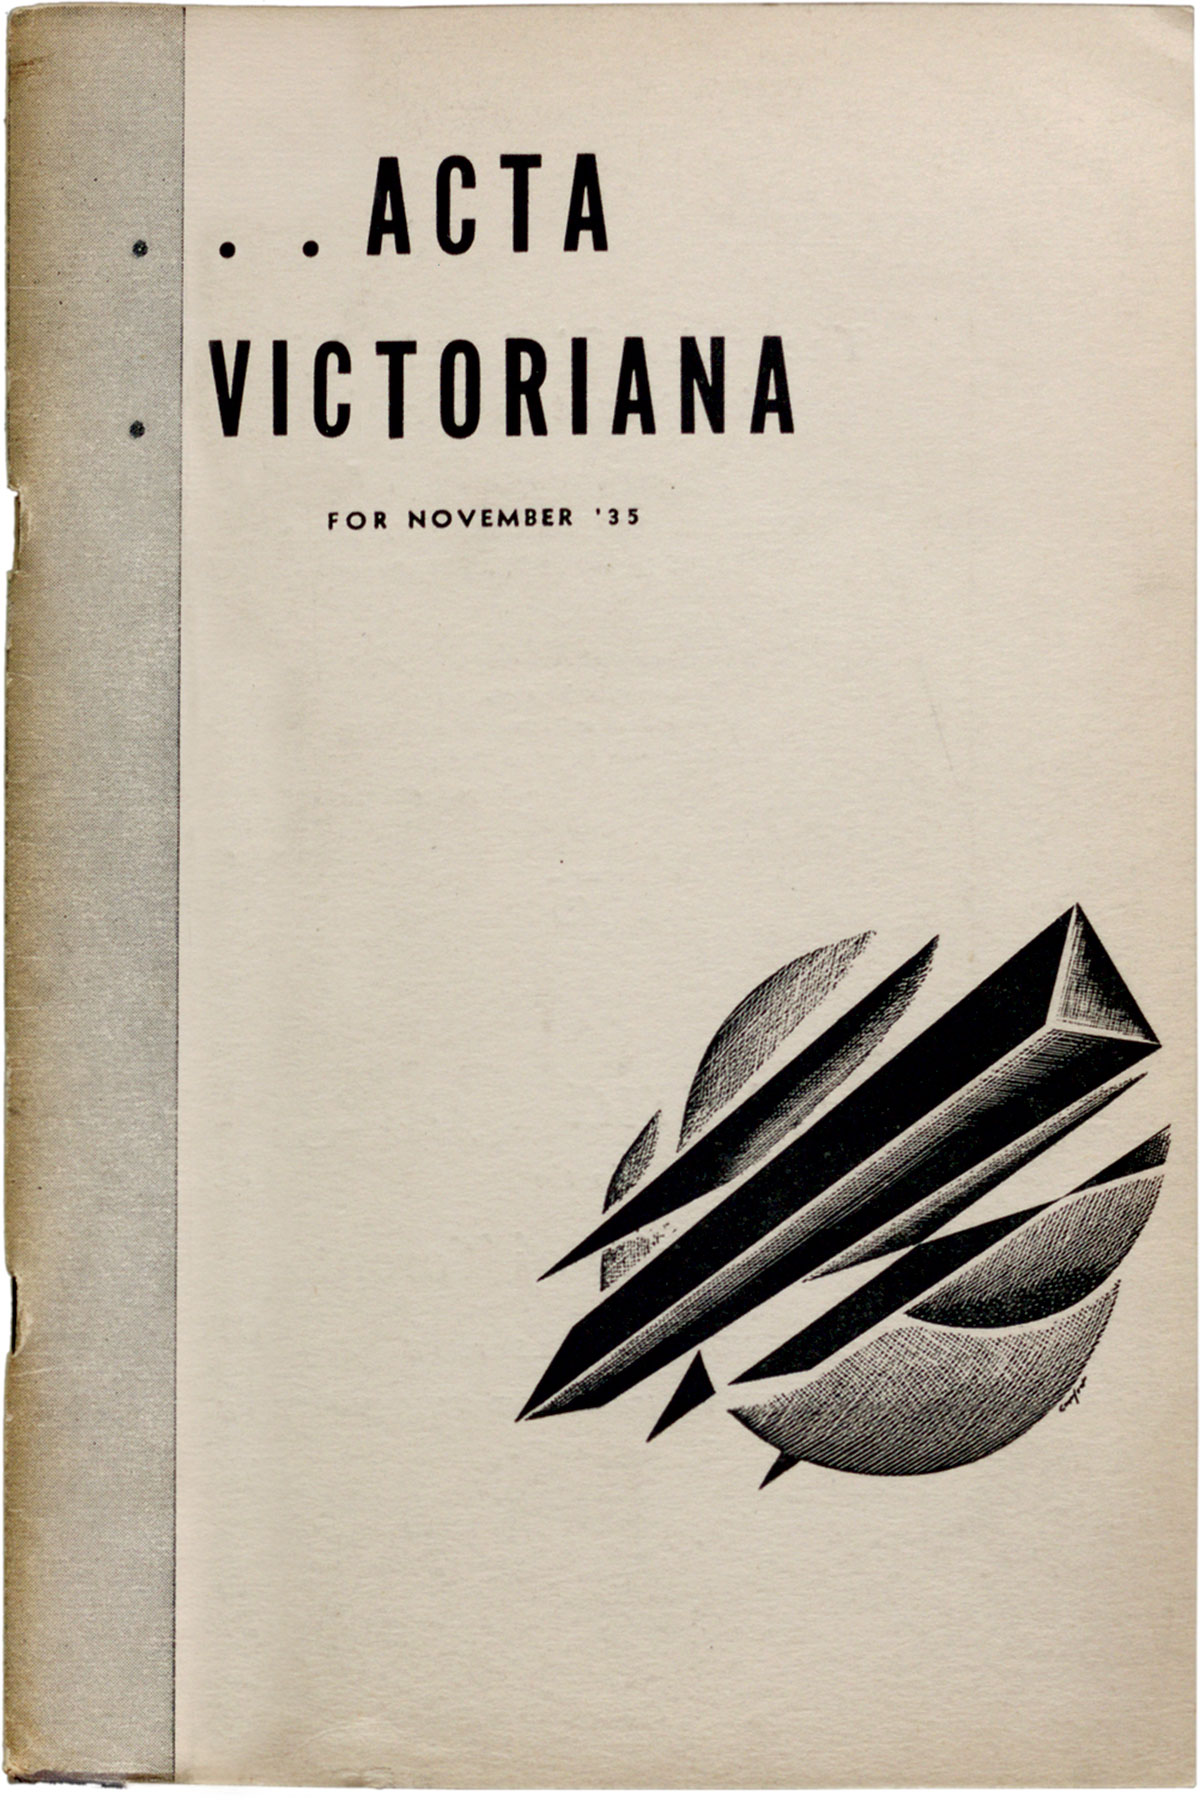 Cover courtesy E. J. Pratt Library